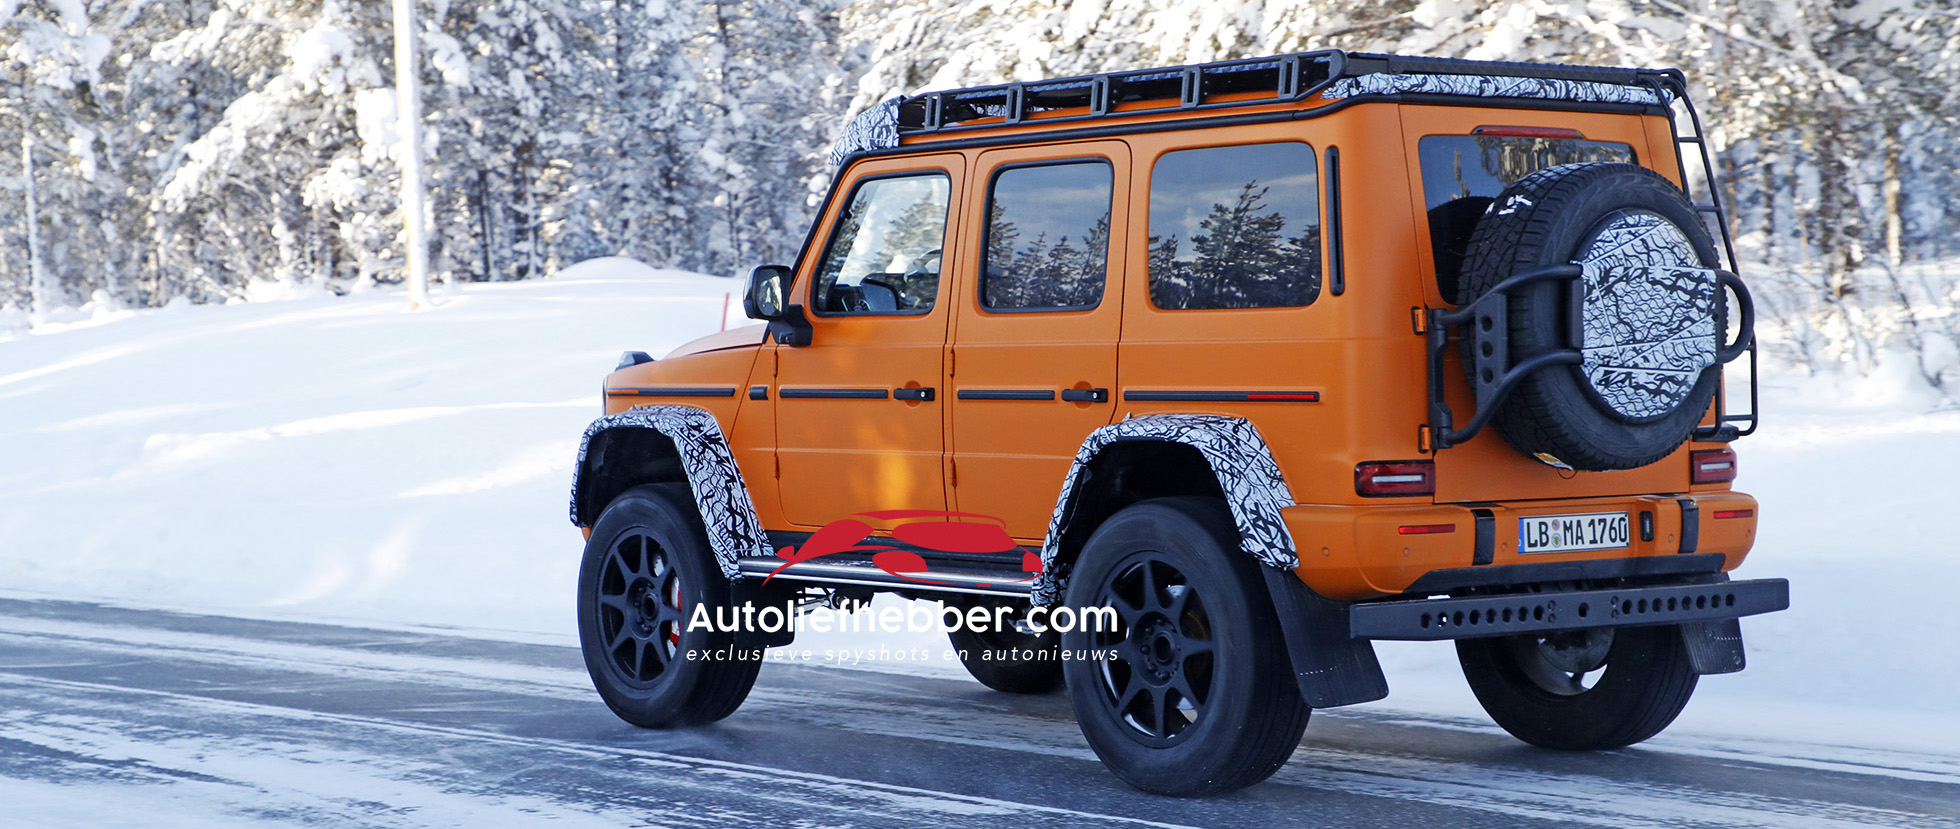 Mercedes G 4x4 wintertest